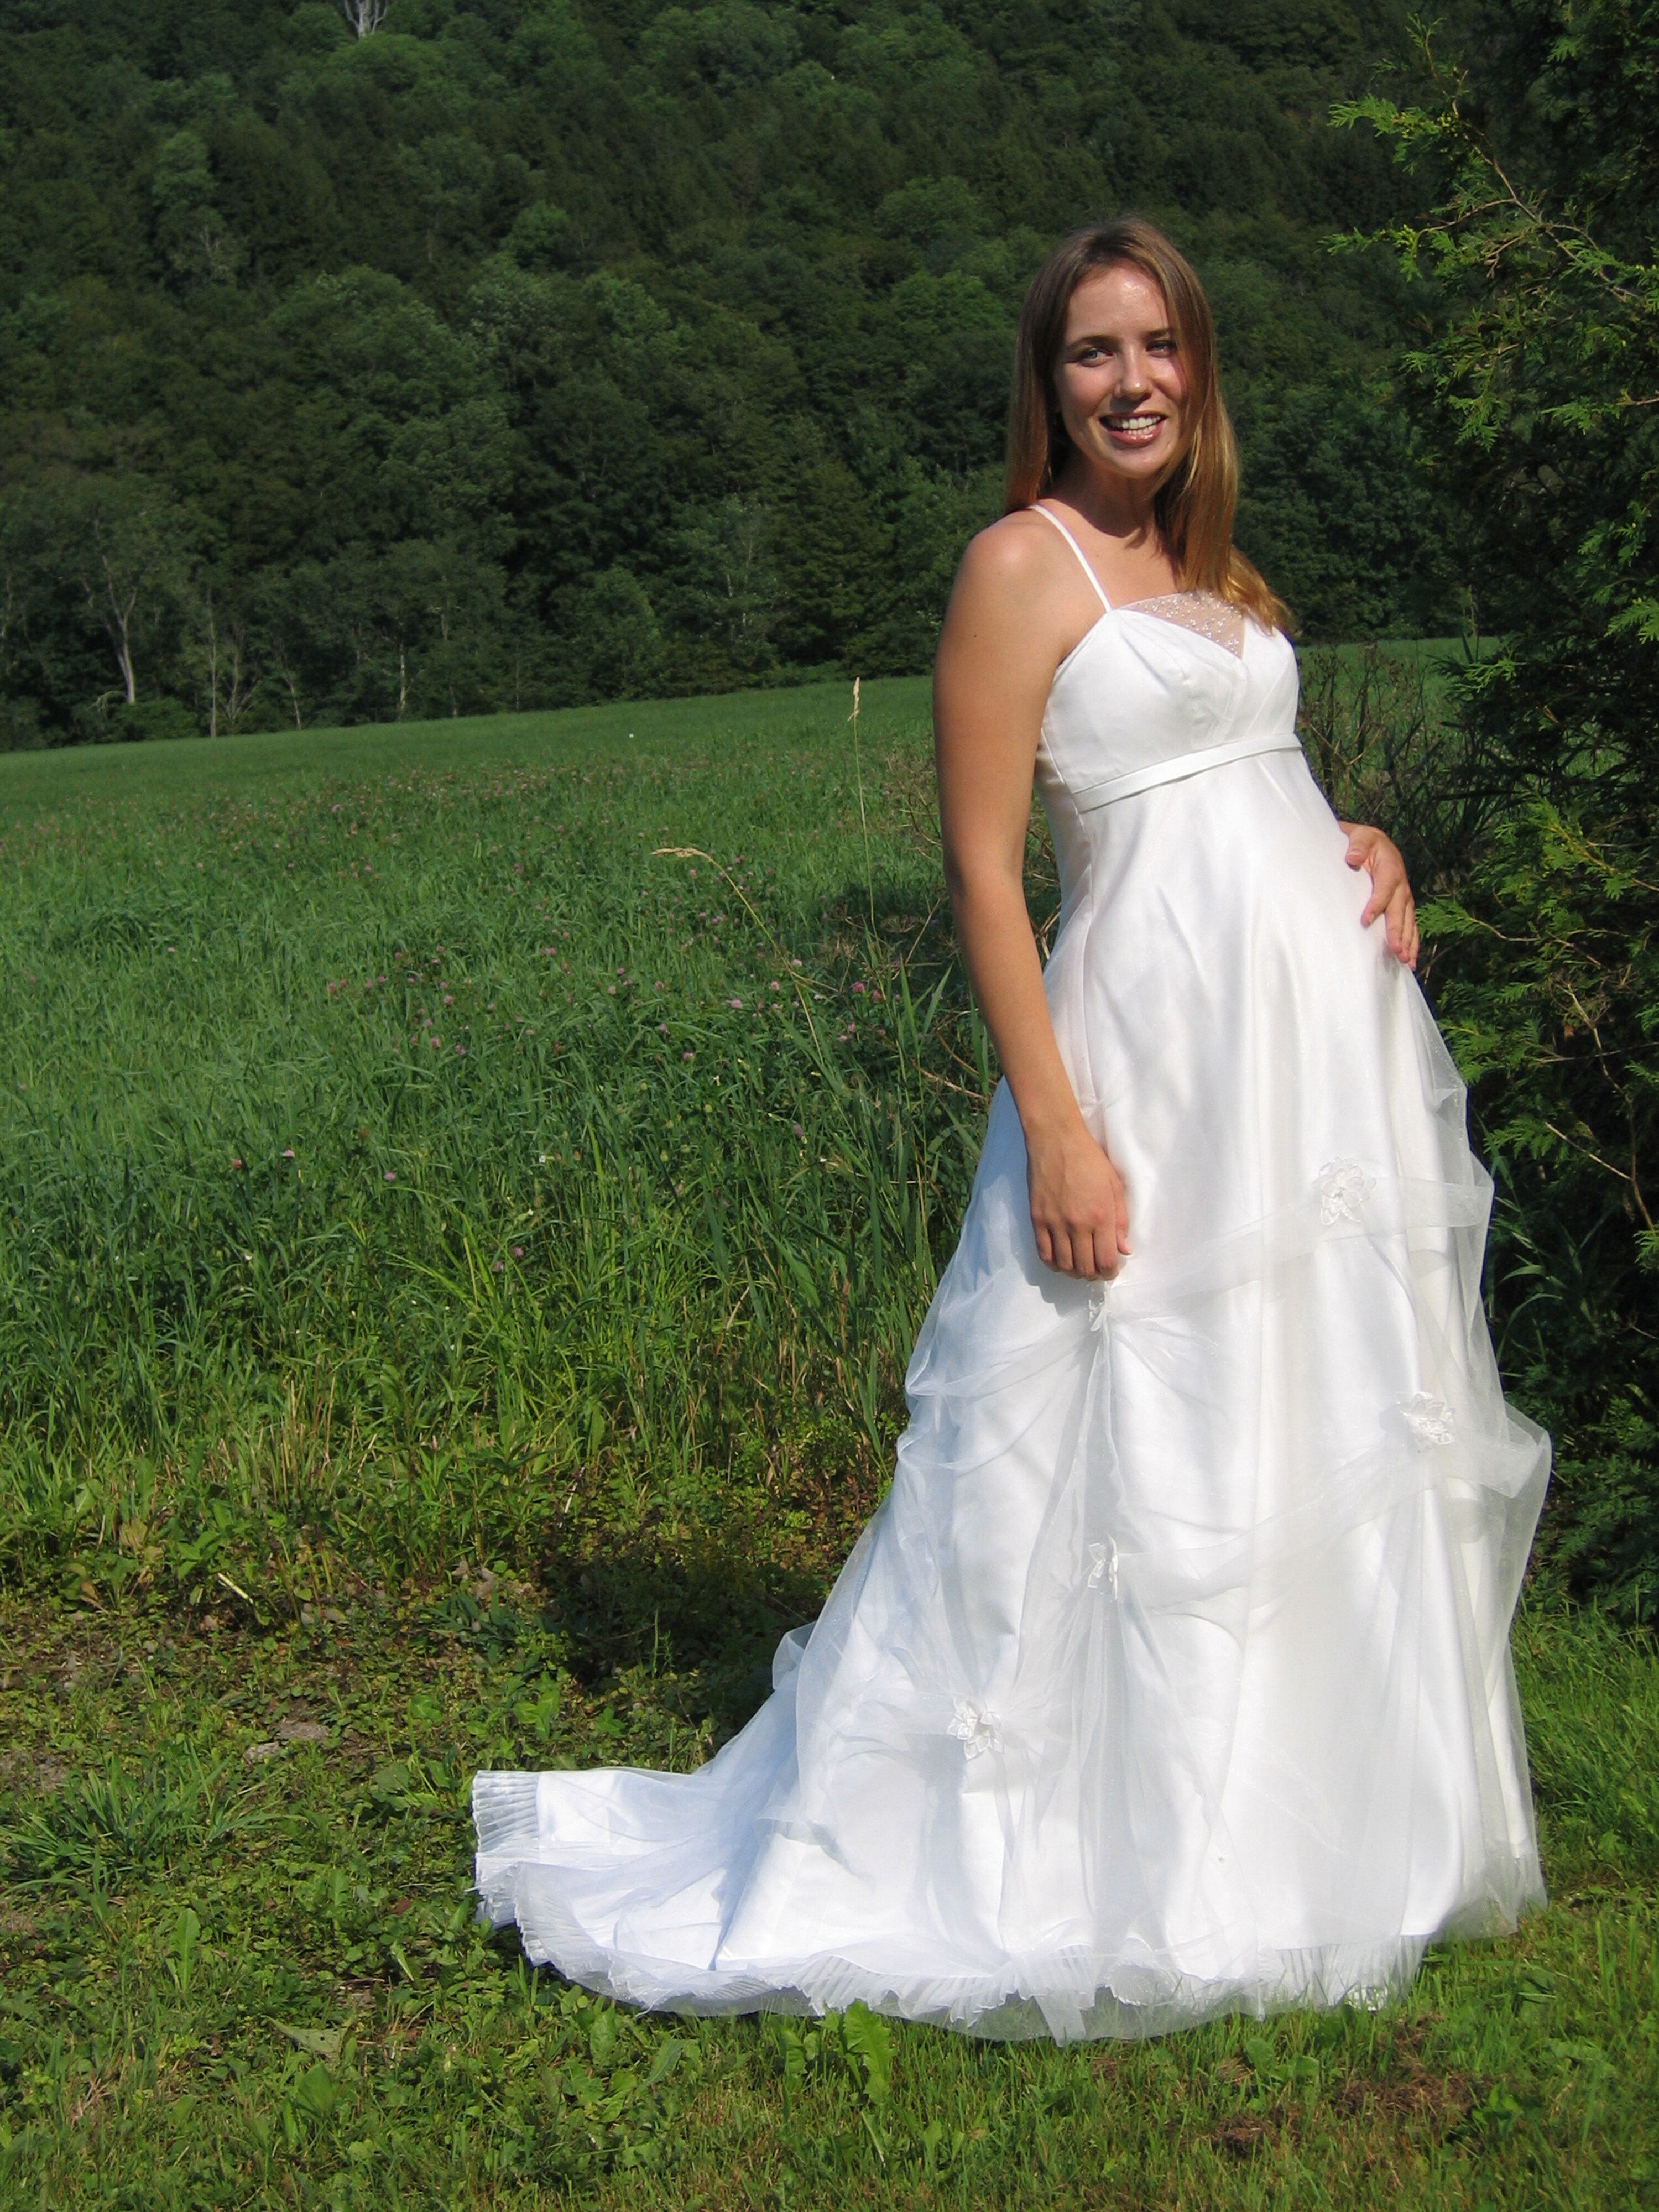 Wedding dresses for pregnant pictures ideas guide to for Wedding dress pregnant bride